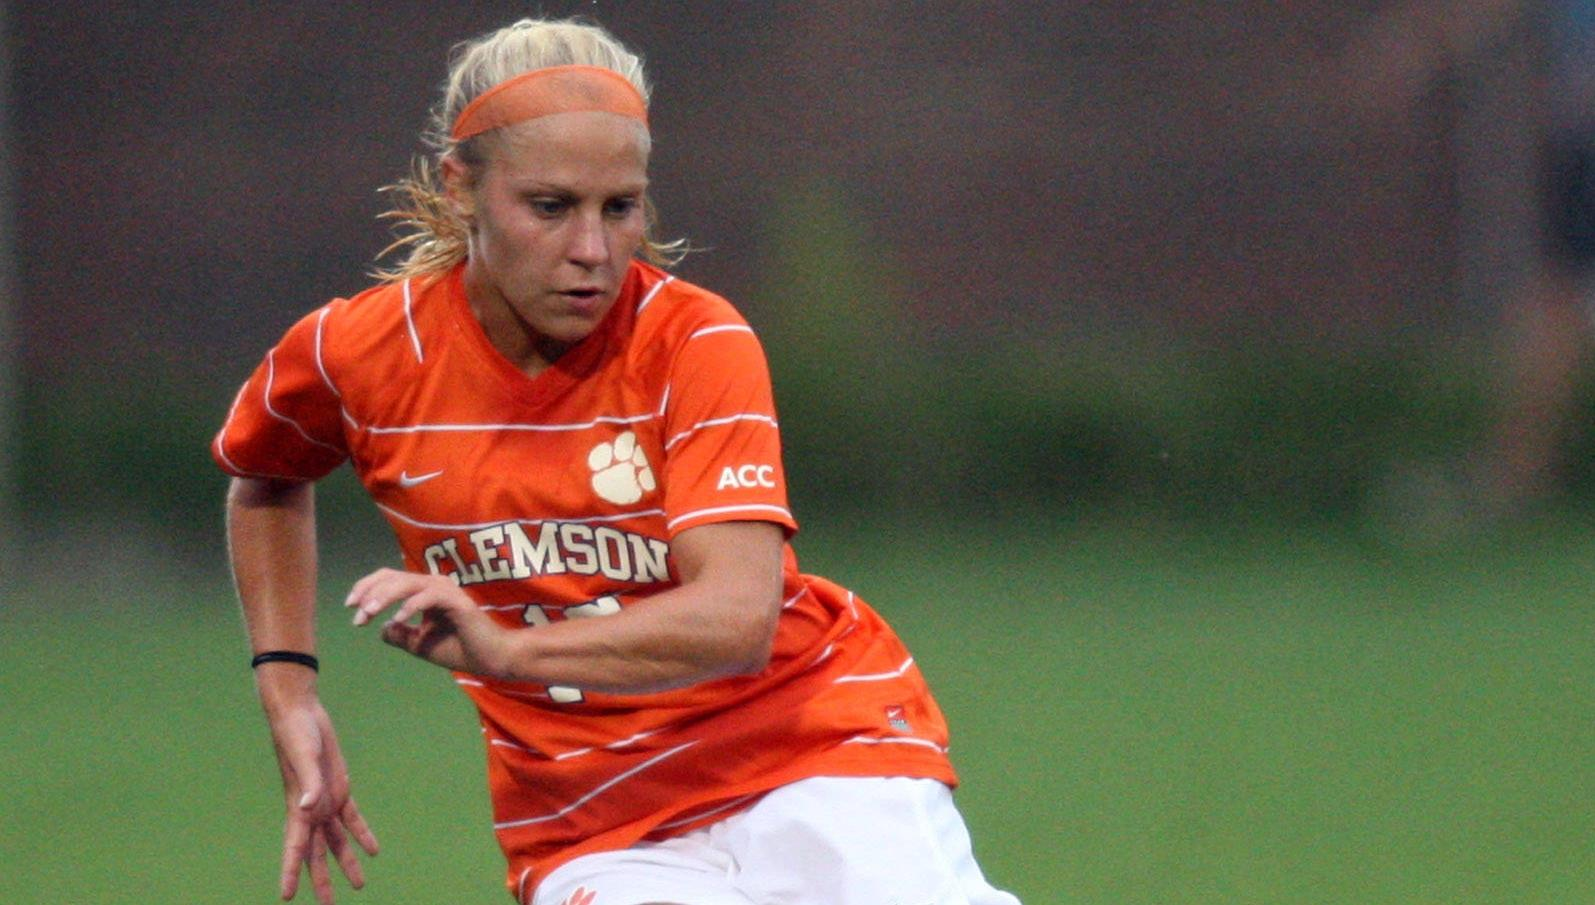 Clemson and Davidson Play to 1-1 Double-Overtime Tie Friday in Davidson, NC